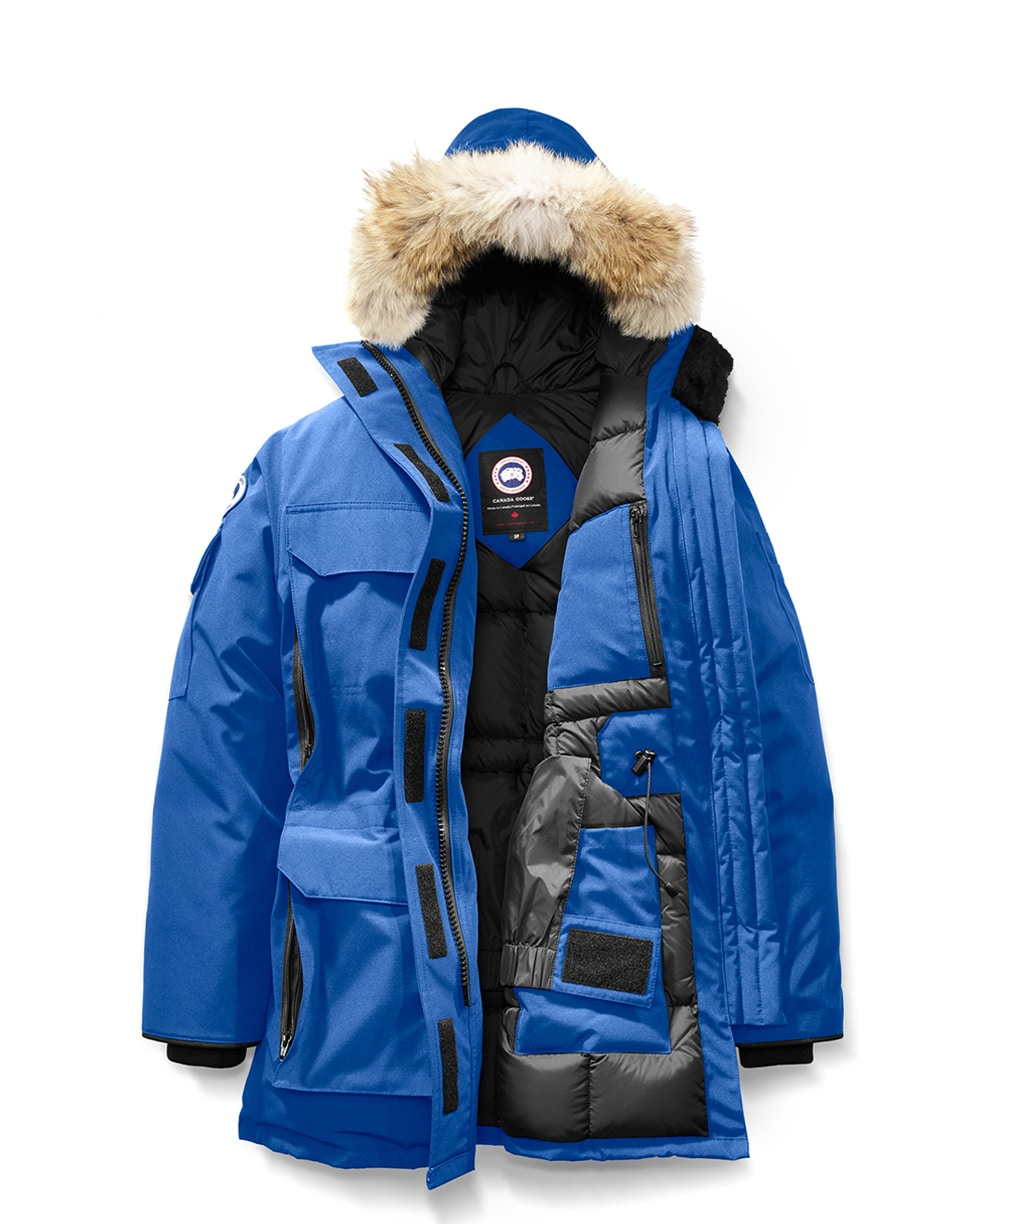 EXPEDITION PARKA PBI FUSION FIT